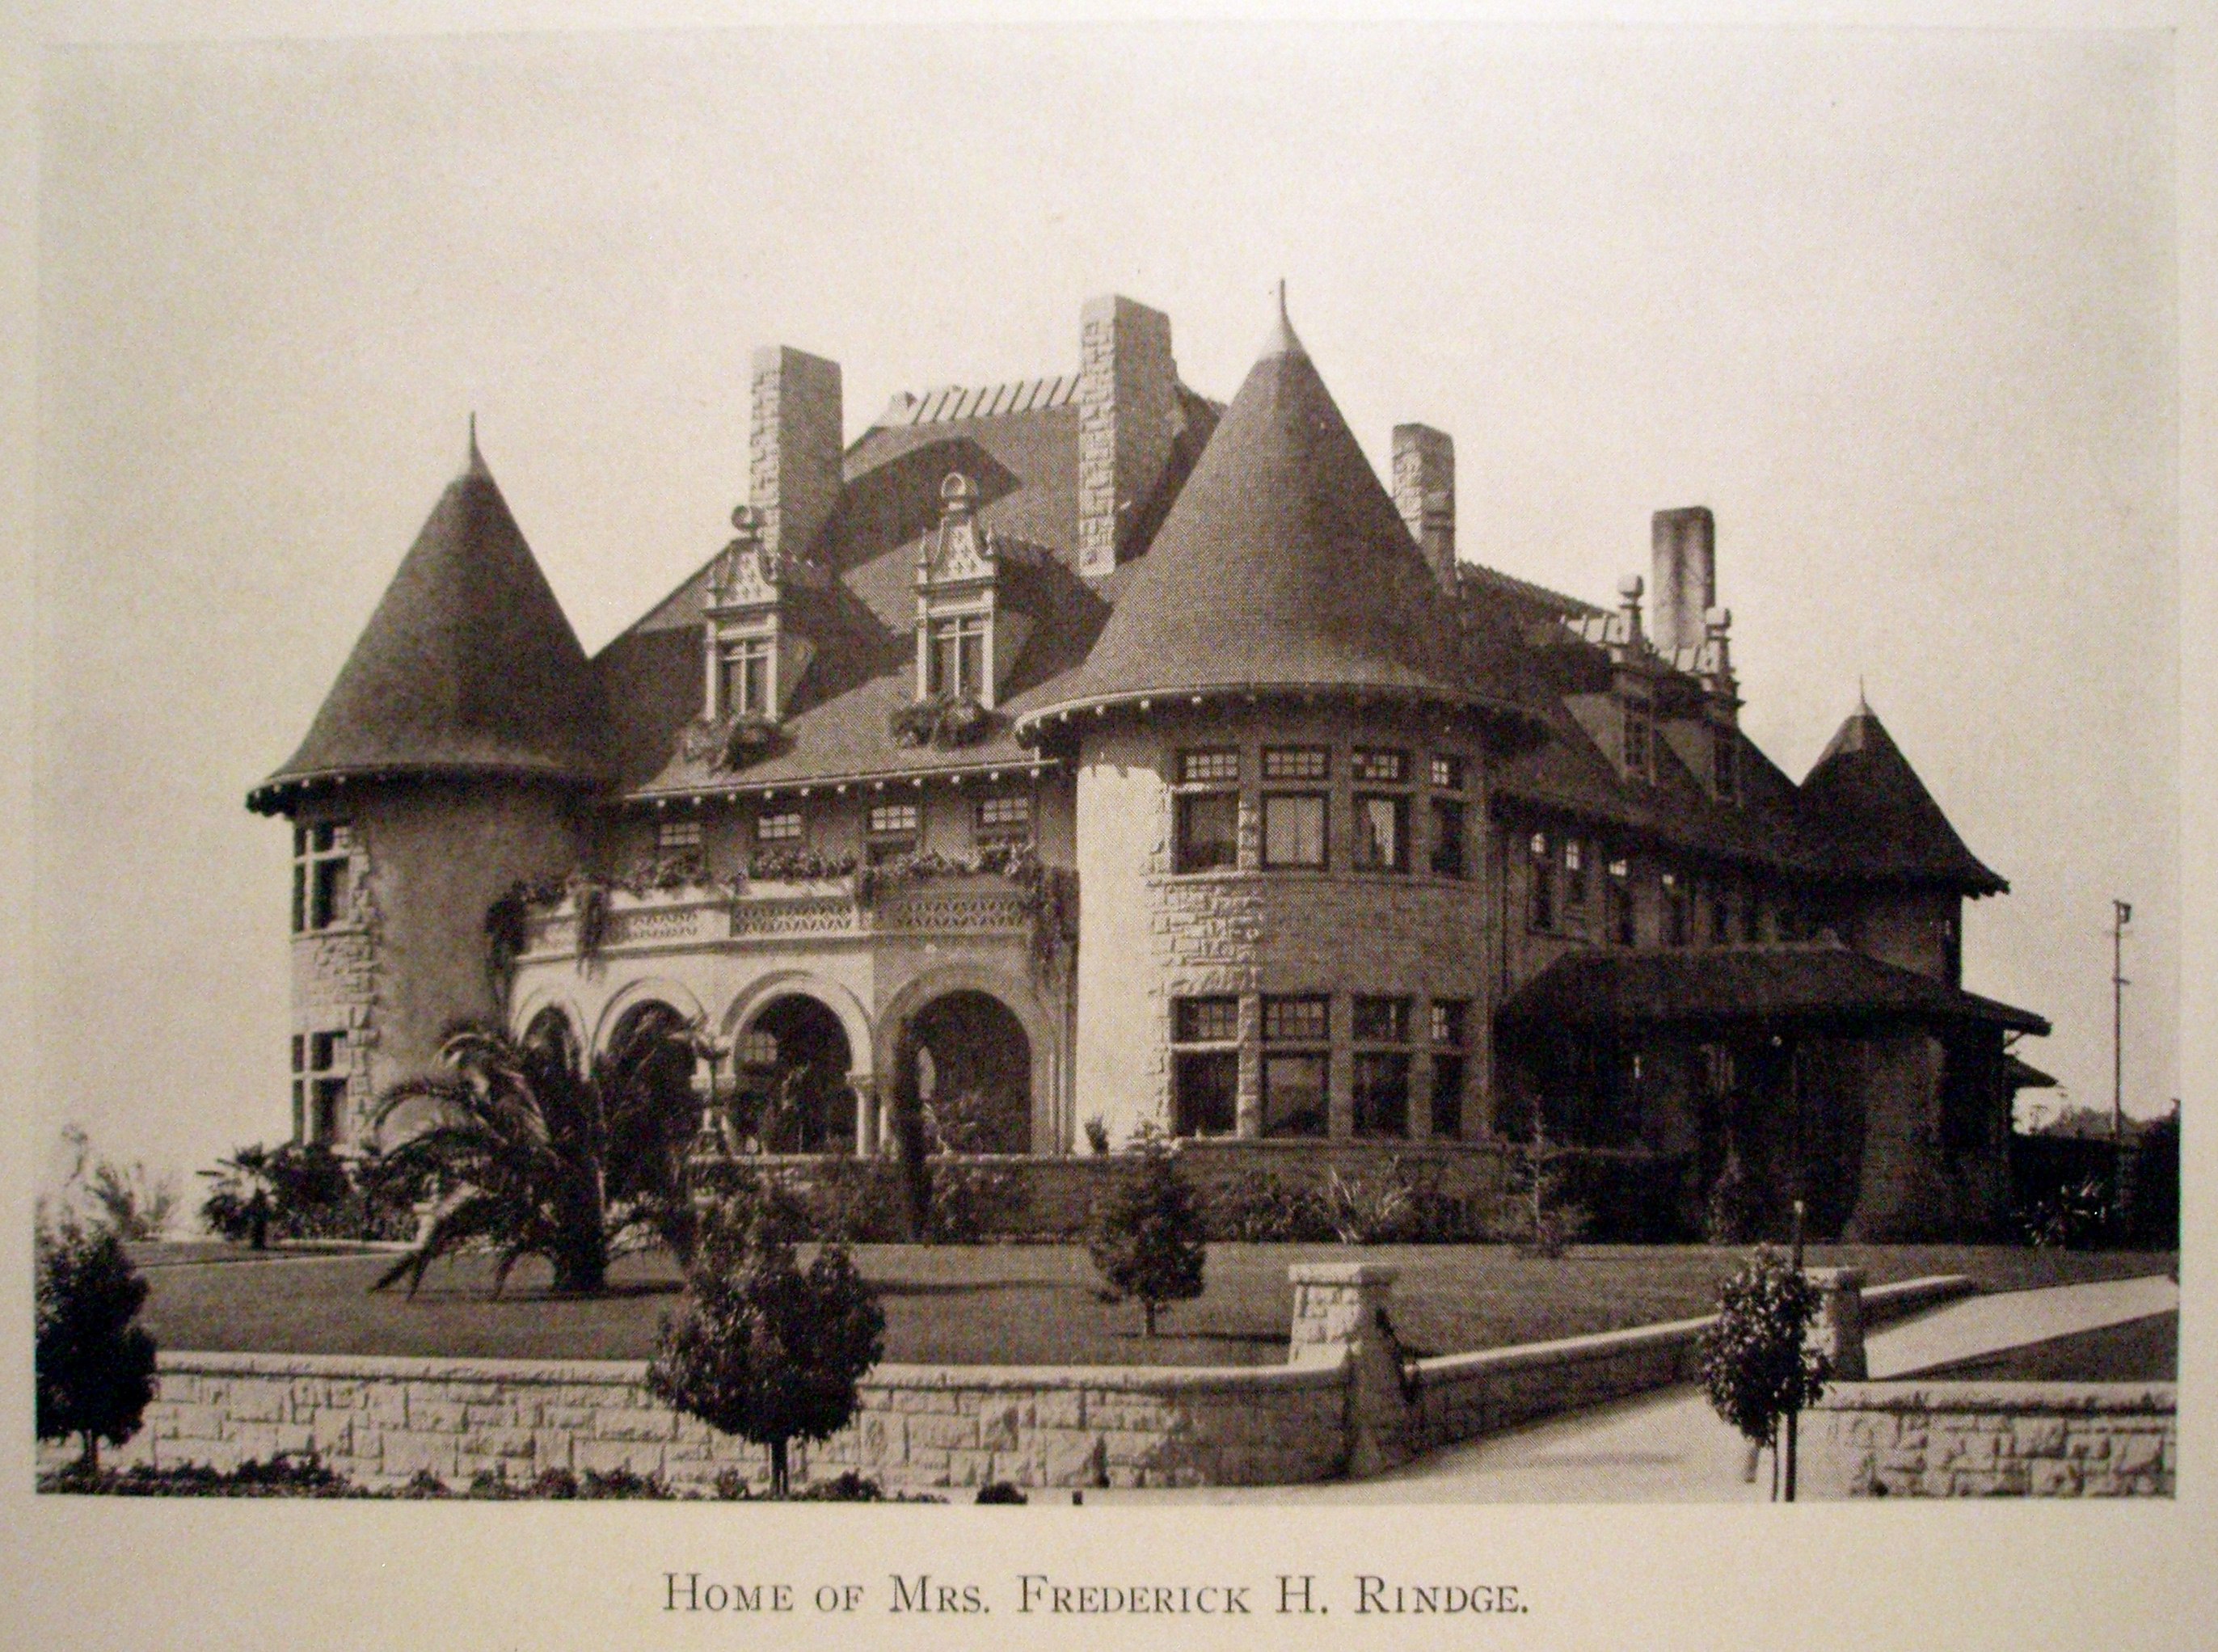 The Rindge House in 1910